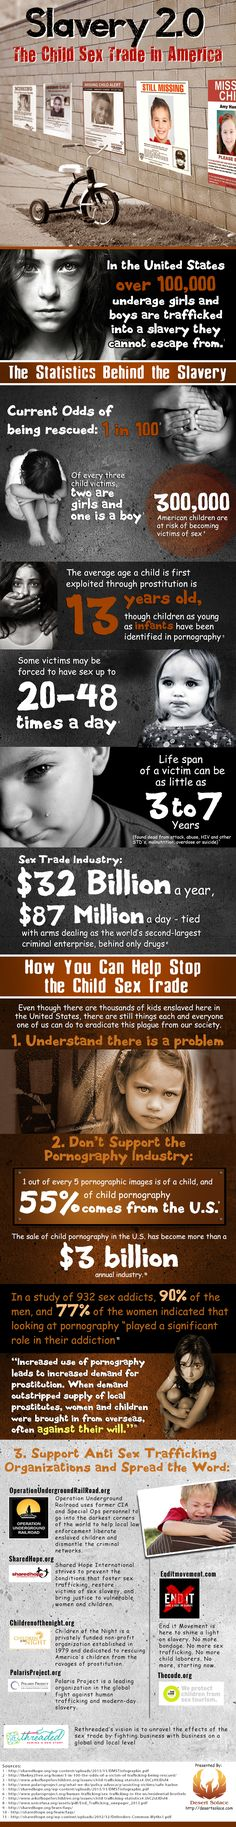 Child Sex Trafficking In America- Children forced to have sex 20-48 times per day. Of course pornography is what has created the demand for so many child sex slaves. Please come soon, Jesus!!!